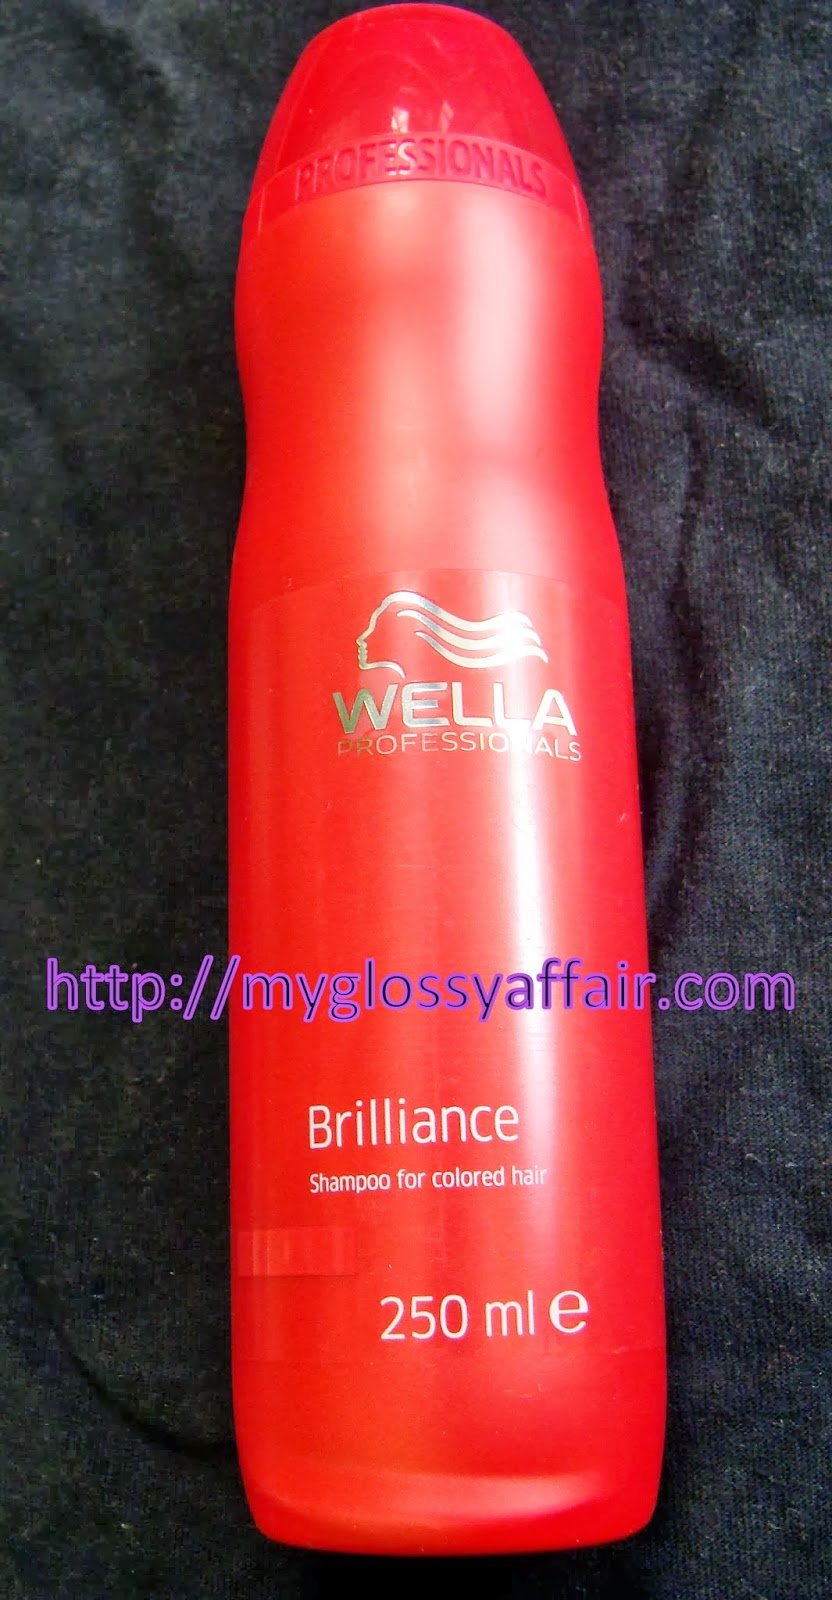 Wella Professionals Brilliance Shampoo For Coloured Hair Review